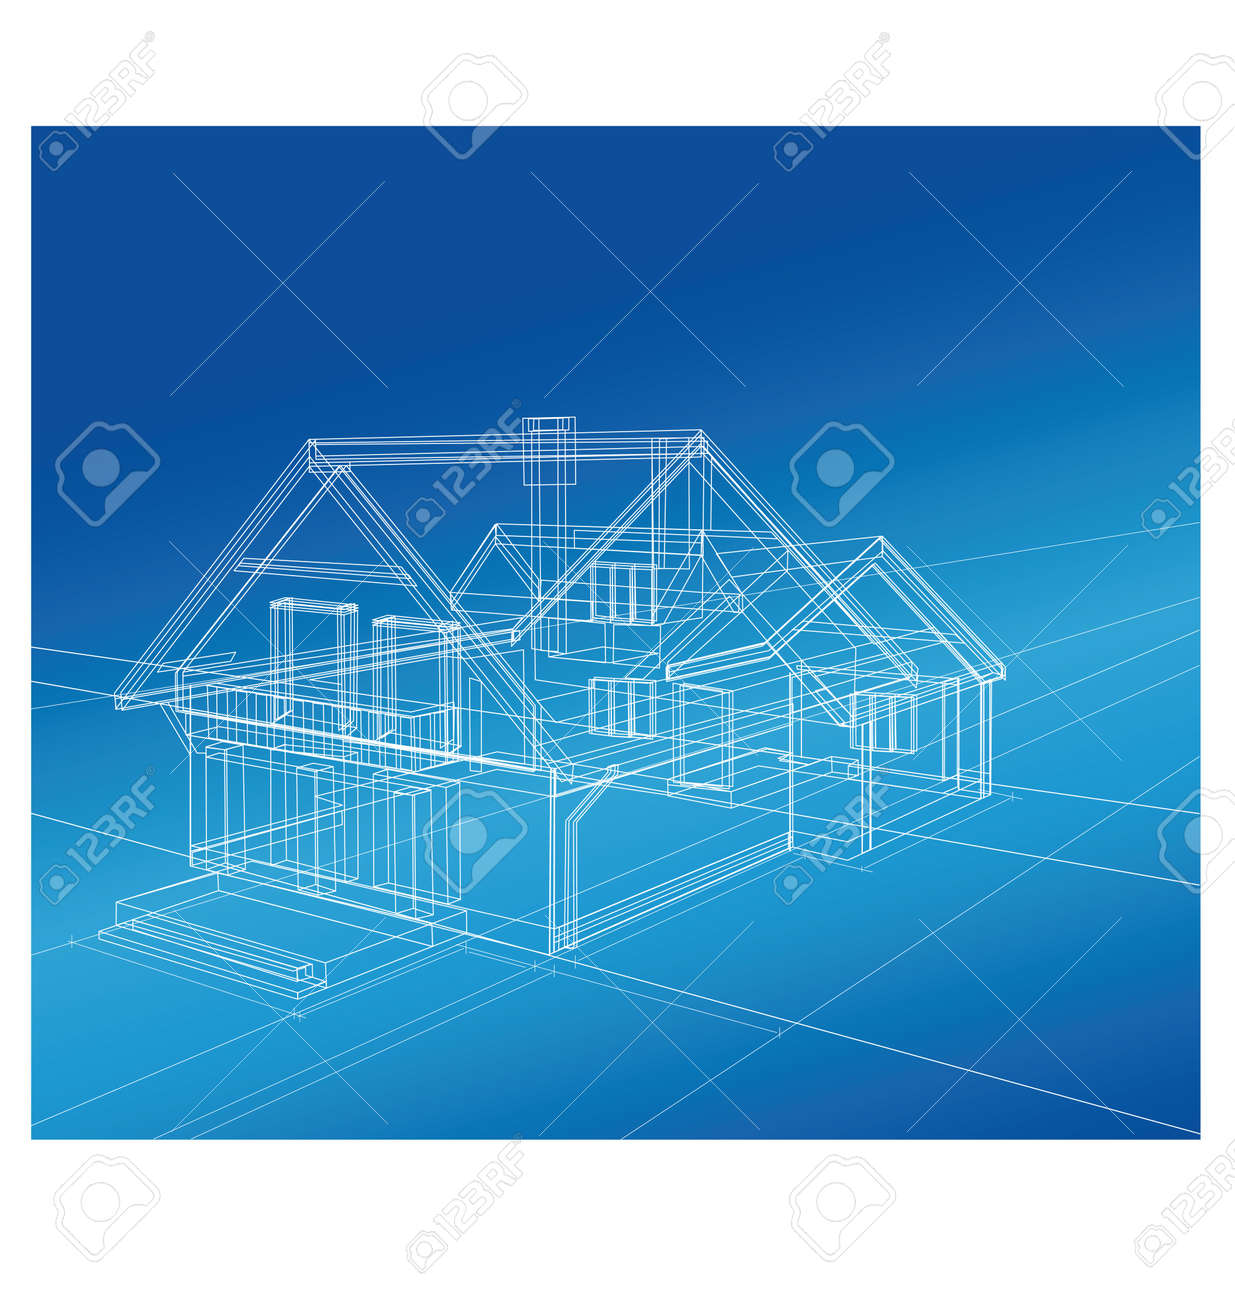 Plan a country house on a colored background - 12480609